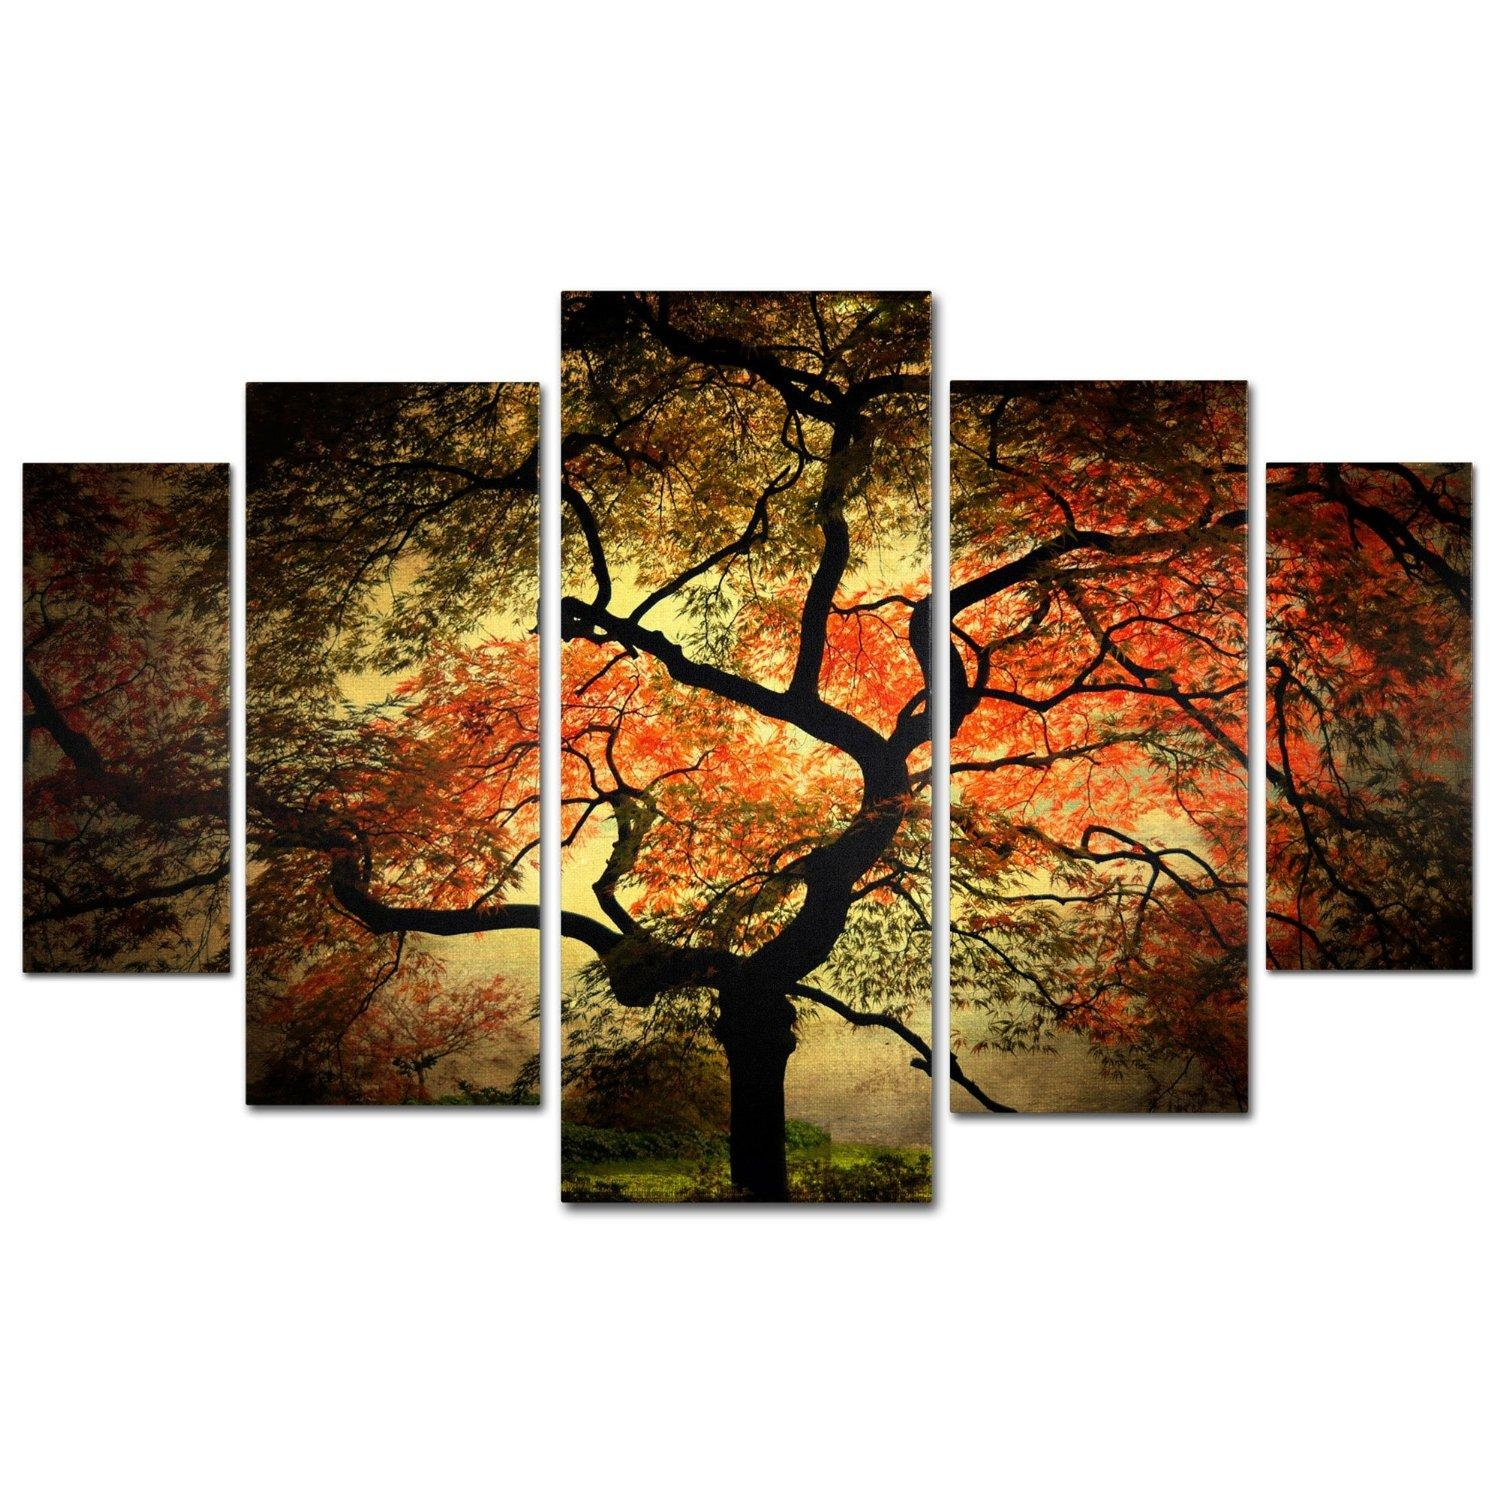 Wall Art Designs: Best Custom Piece Multiple Canvas Wall Art Multi Regarding Huge Wall Art Canvas (View 13 of 20)